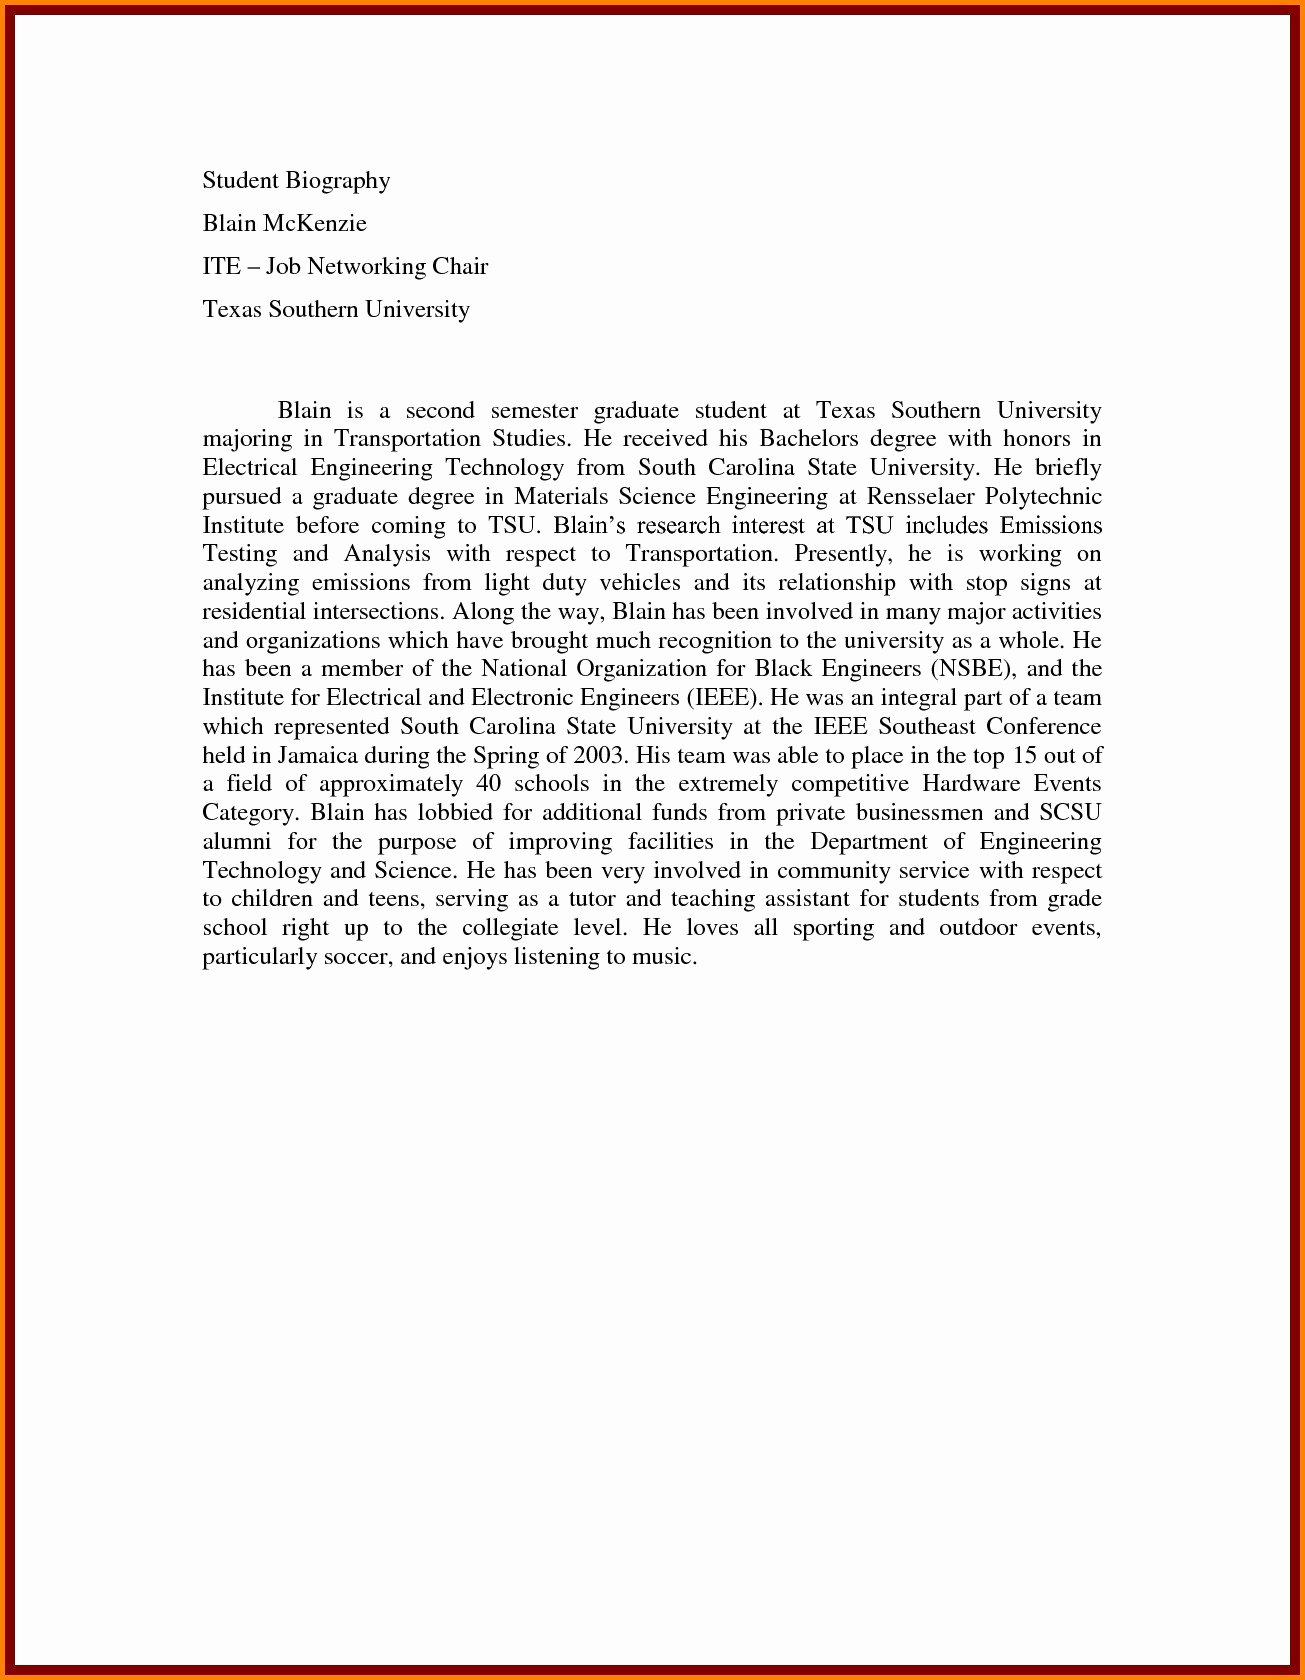 Biography Template for Students Lovely Autobiography Examples for High School Students Filename 4